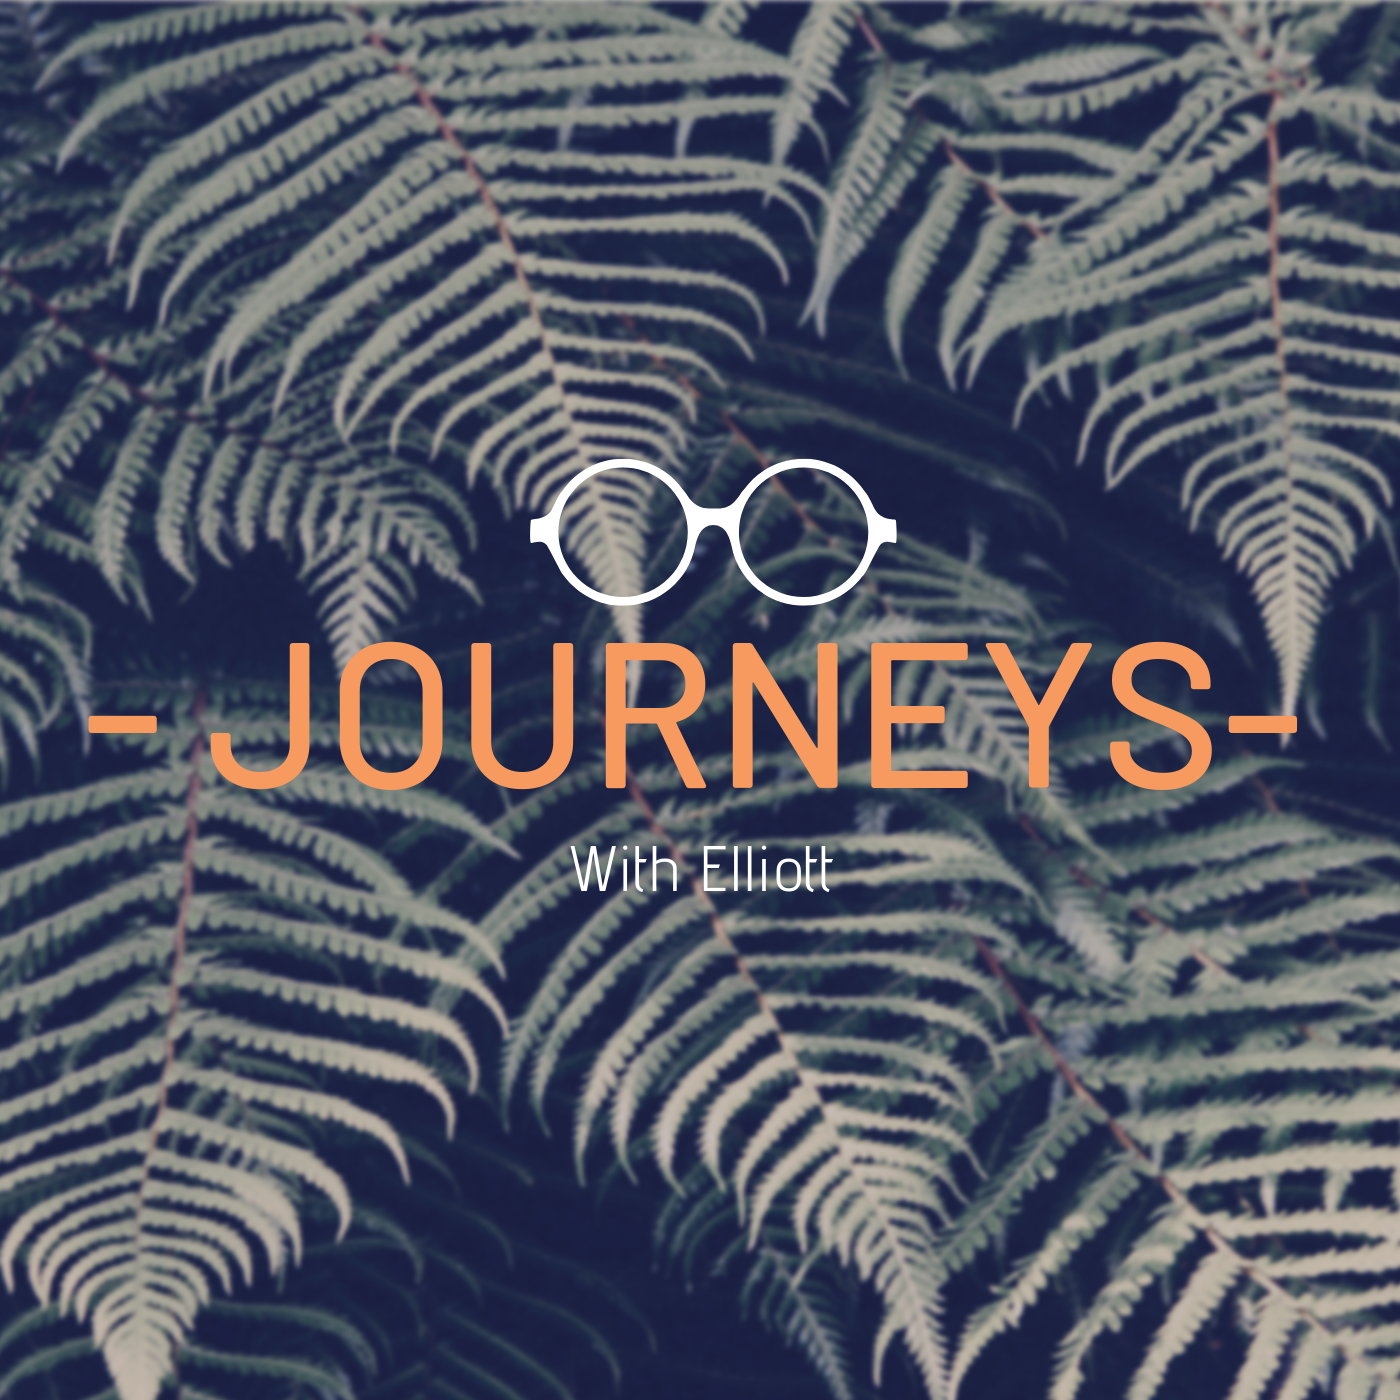 #11 Working Online & Travelling + An Emotional Travel Story